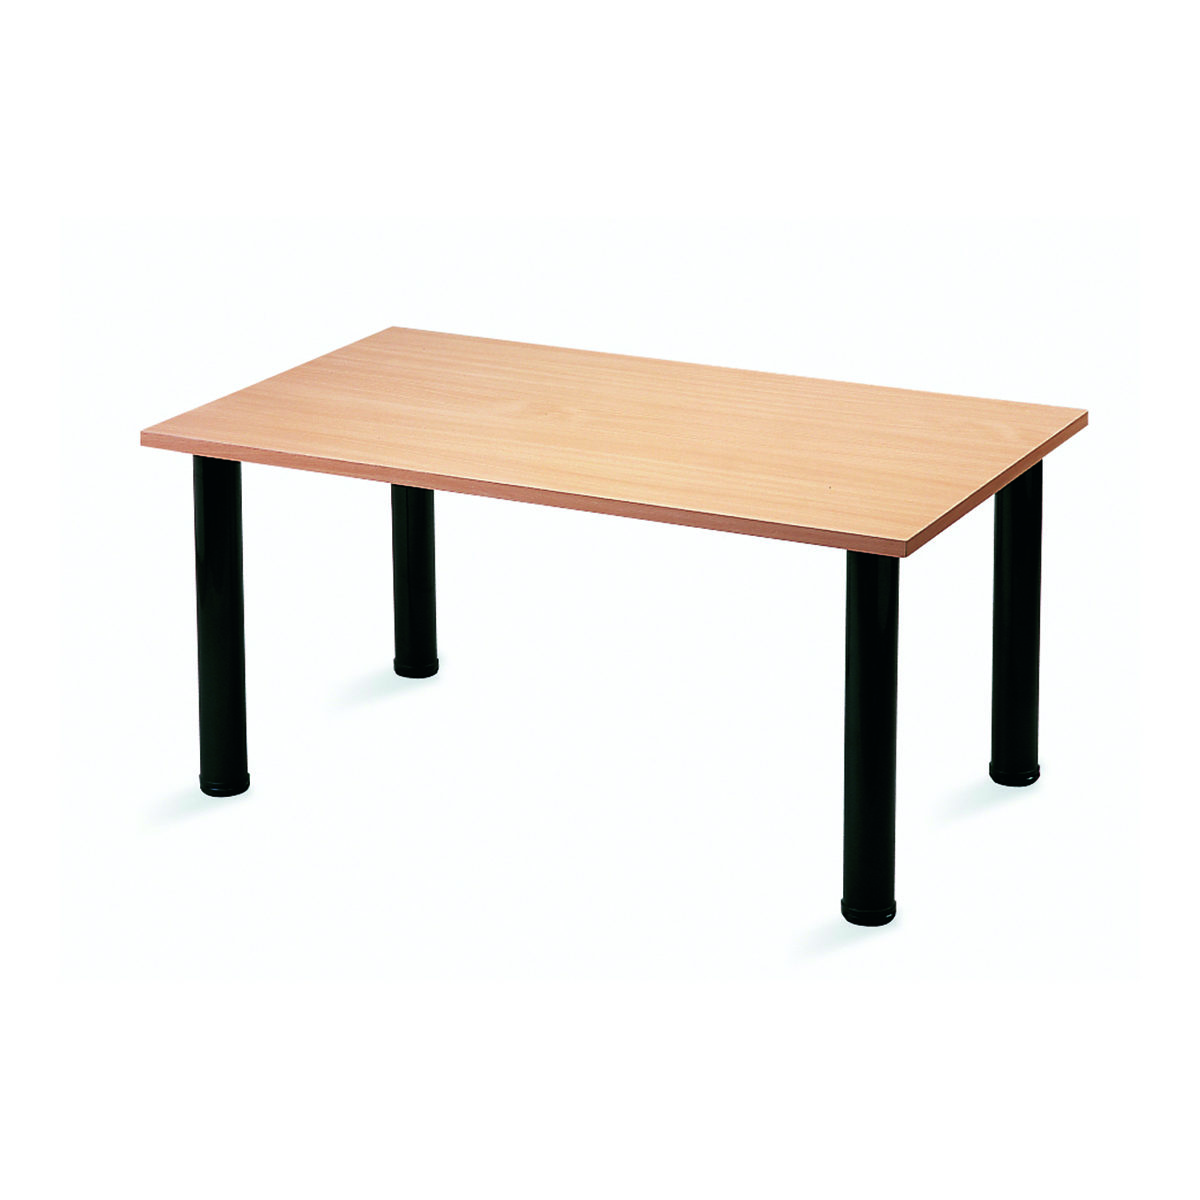 Meuble Table Galapagos Basse Fonction – 6byYf7g